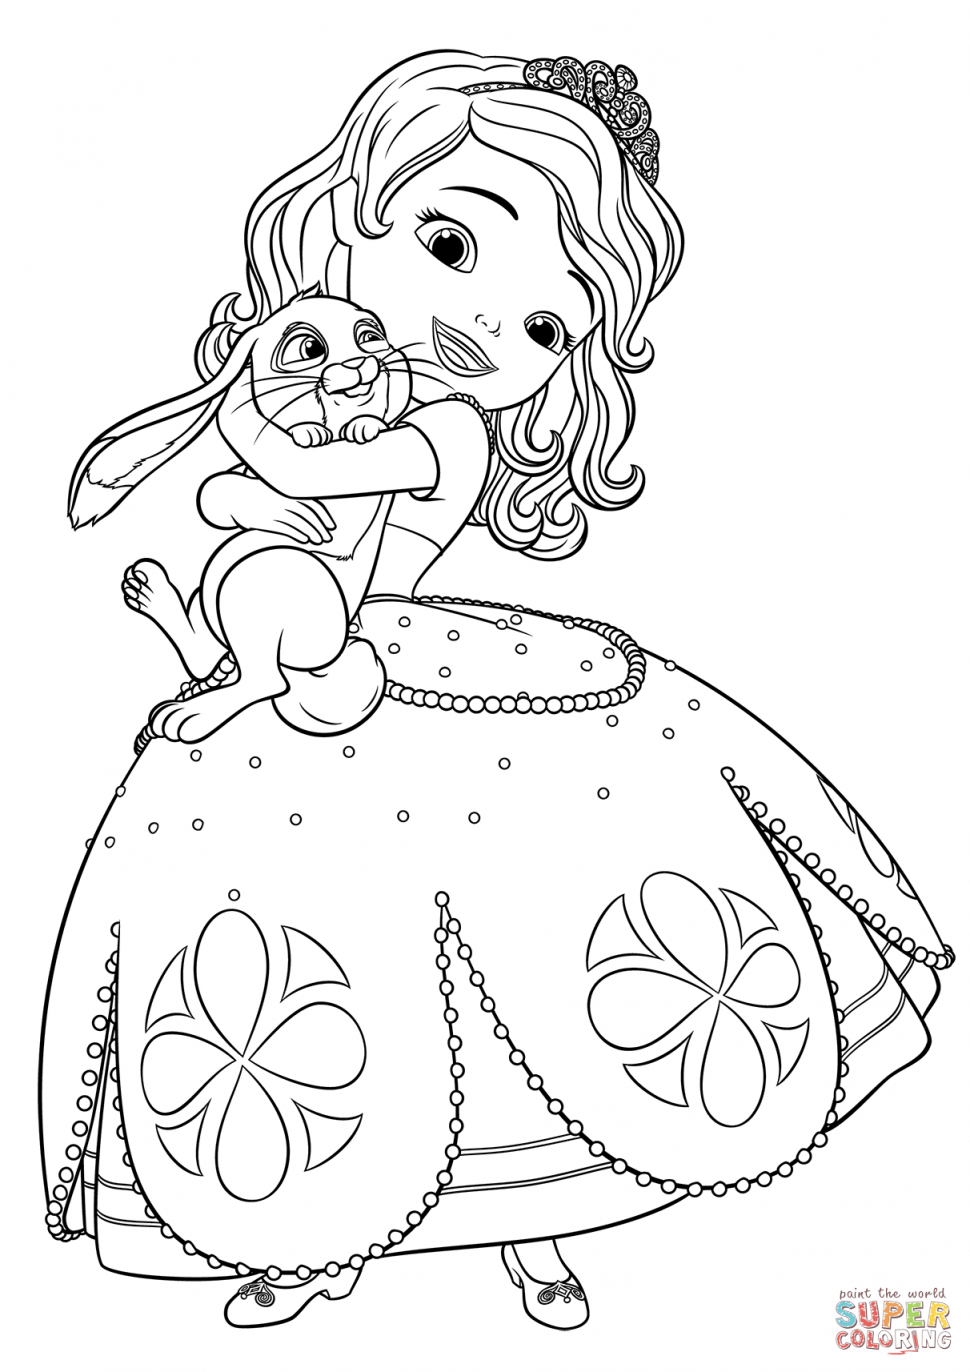 sofia the first coloring book sofia the first coloring pages for girls to print for free first sofia coloring the book